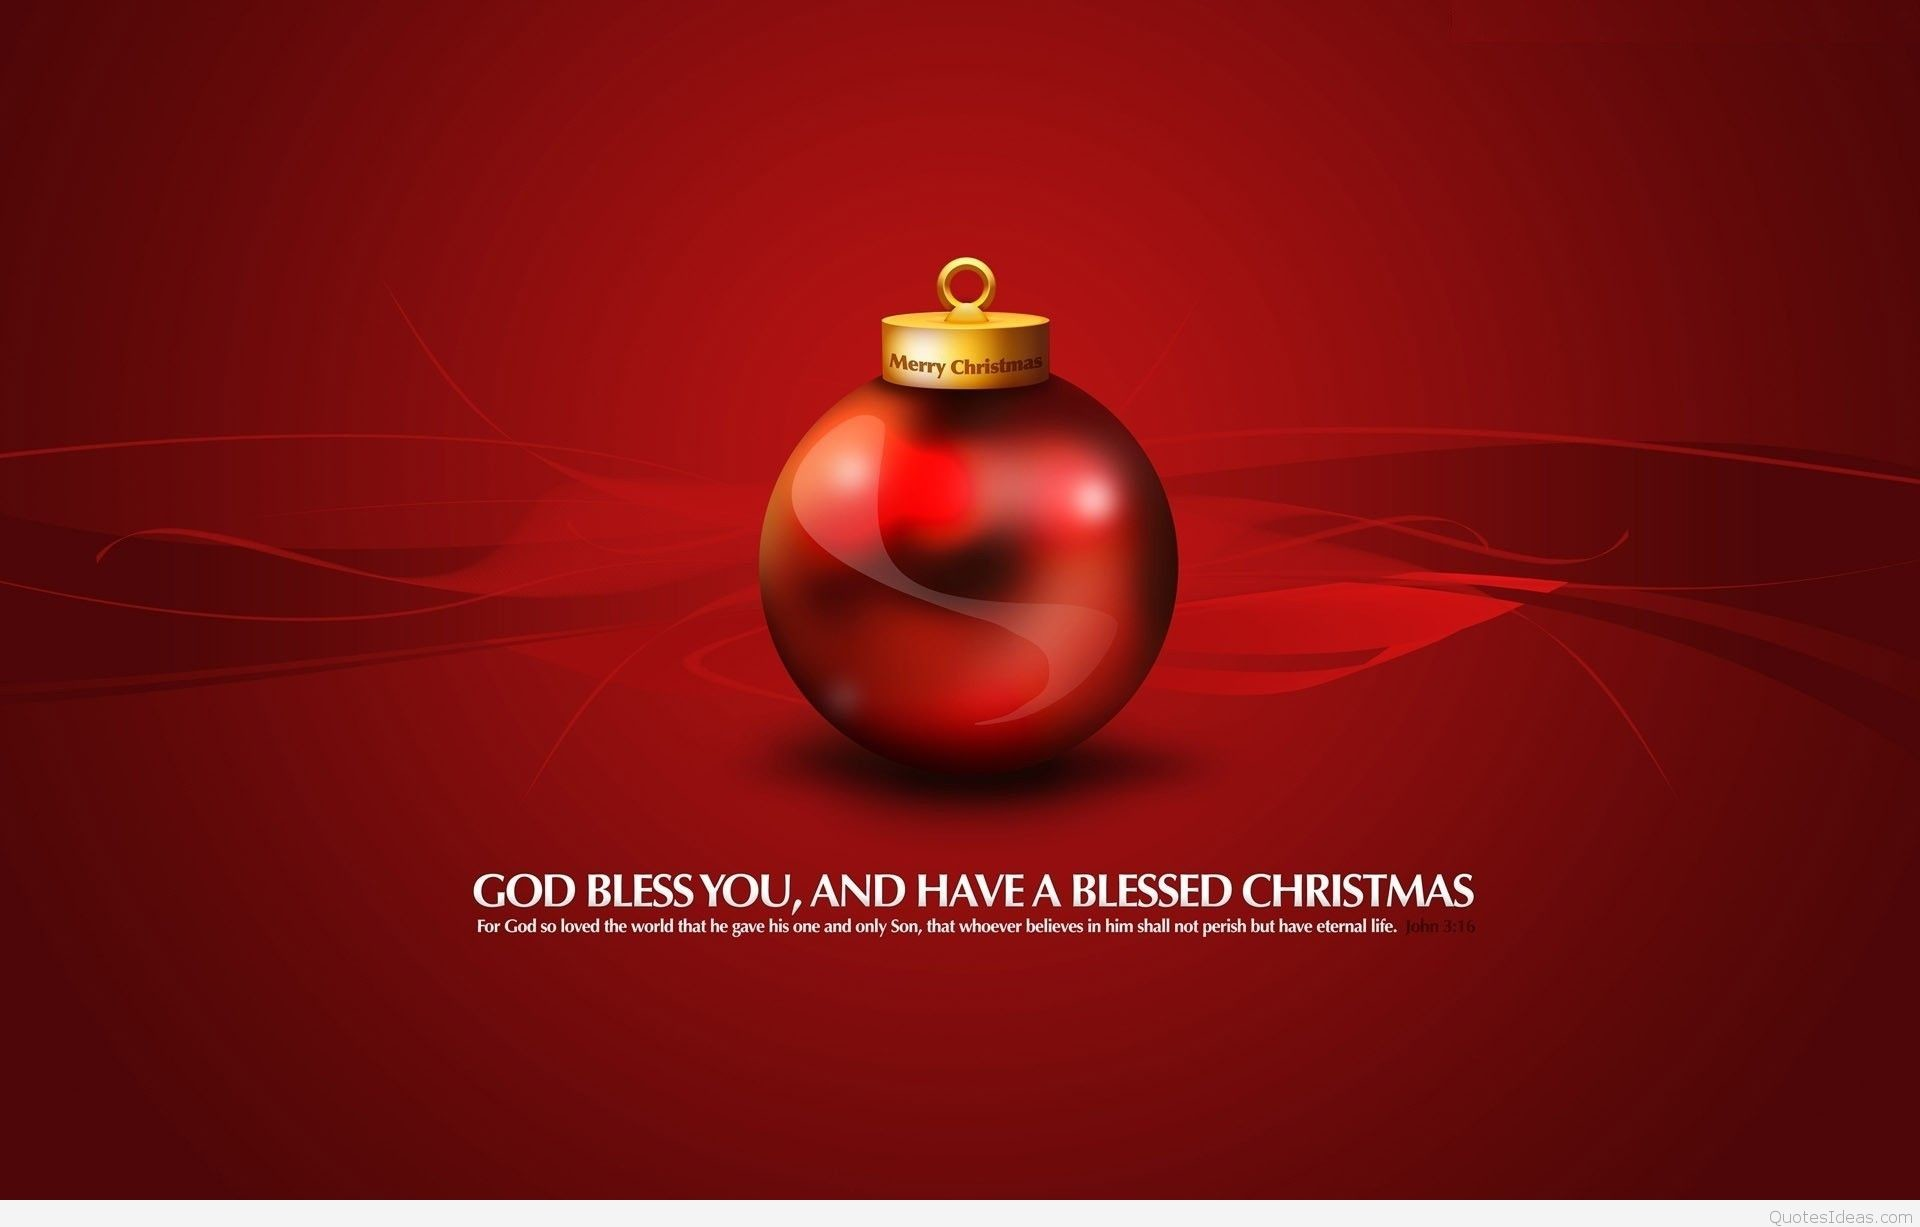 Quote on Merry Christmas wallpaper · www.hdnicewallpapers.com